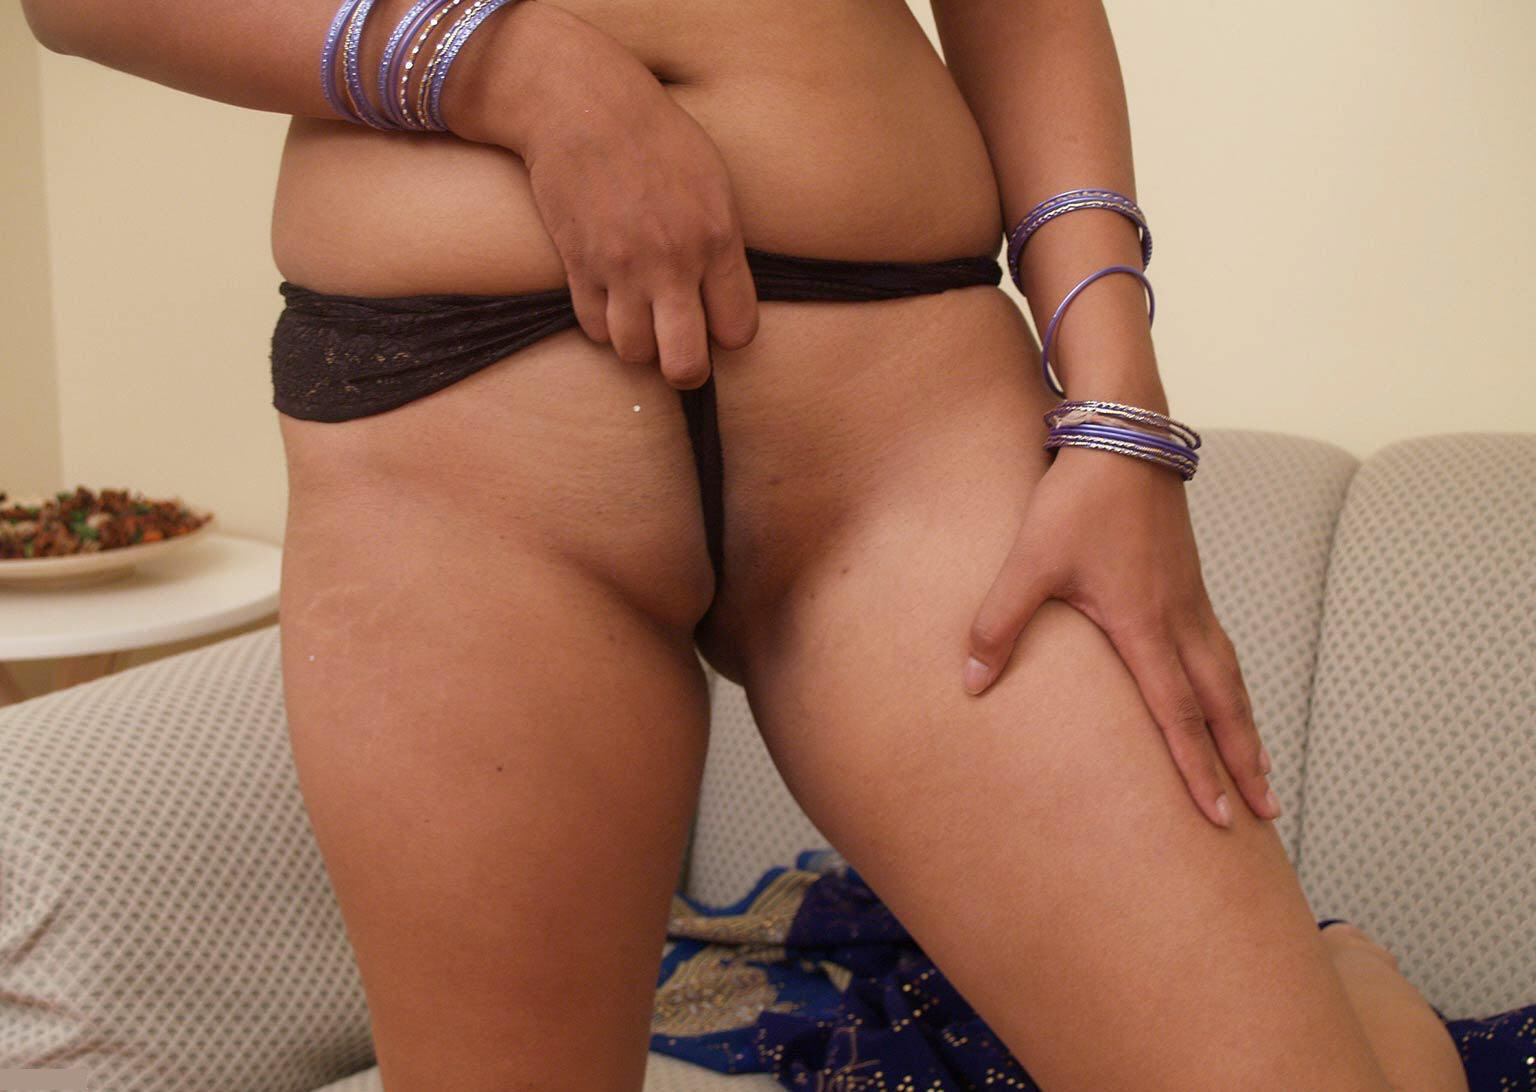 Naked Girls: hot girl meena showing her full nude